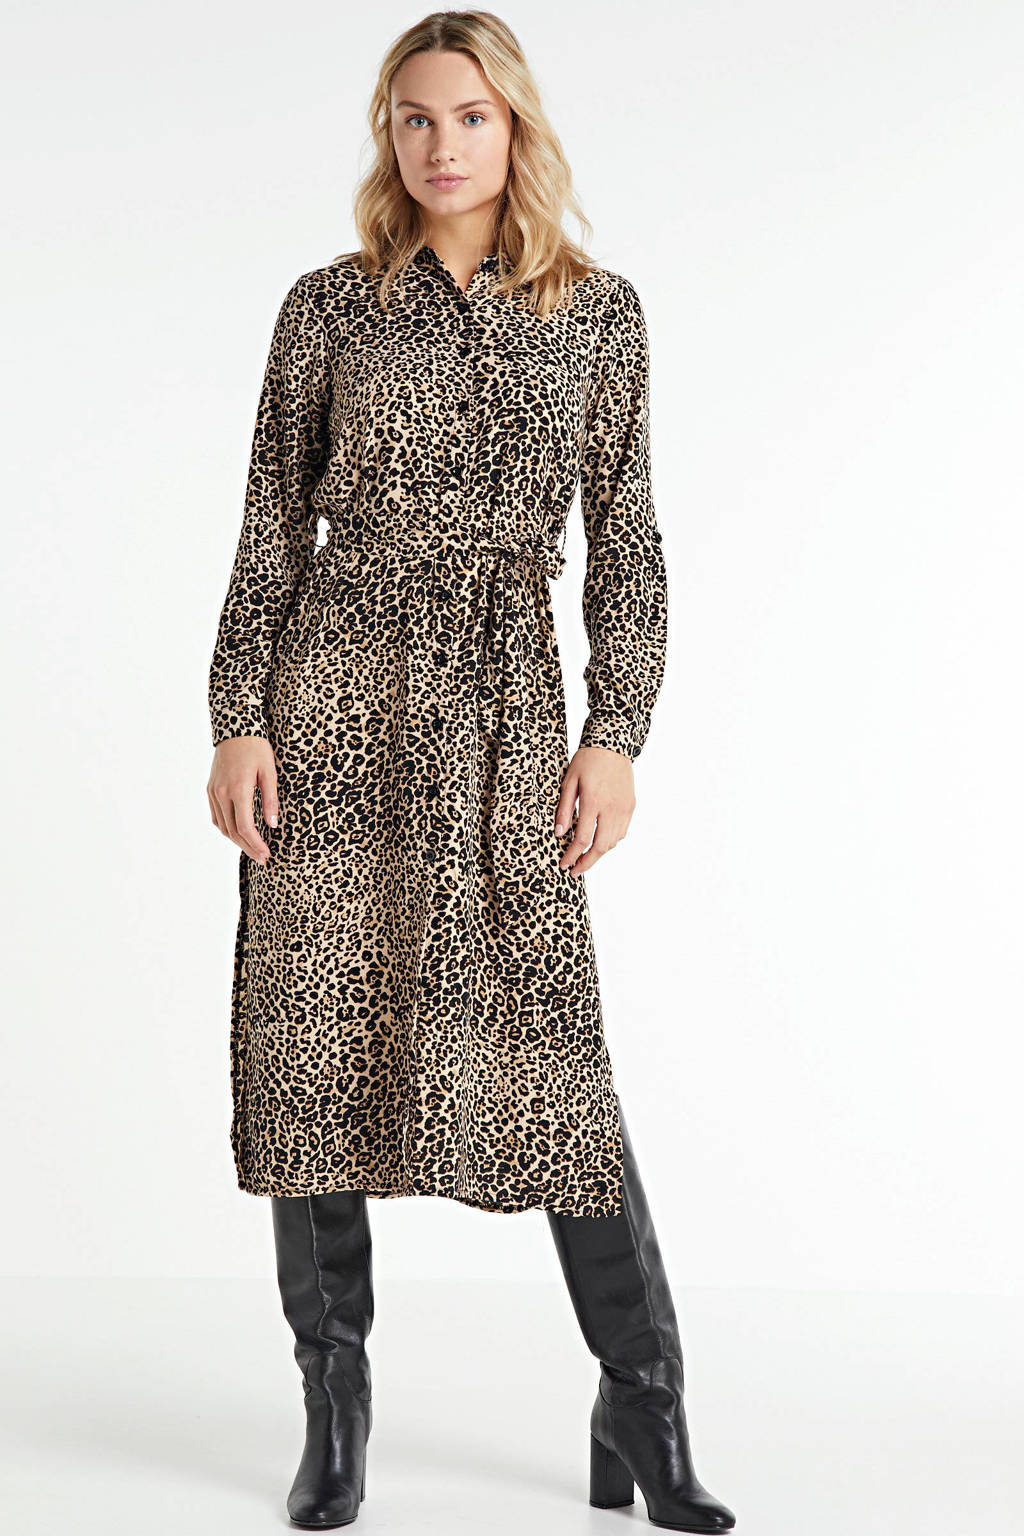 SisterS Point blousejurk met all over print bruin, Bruin